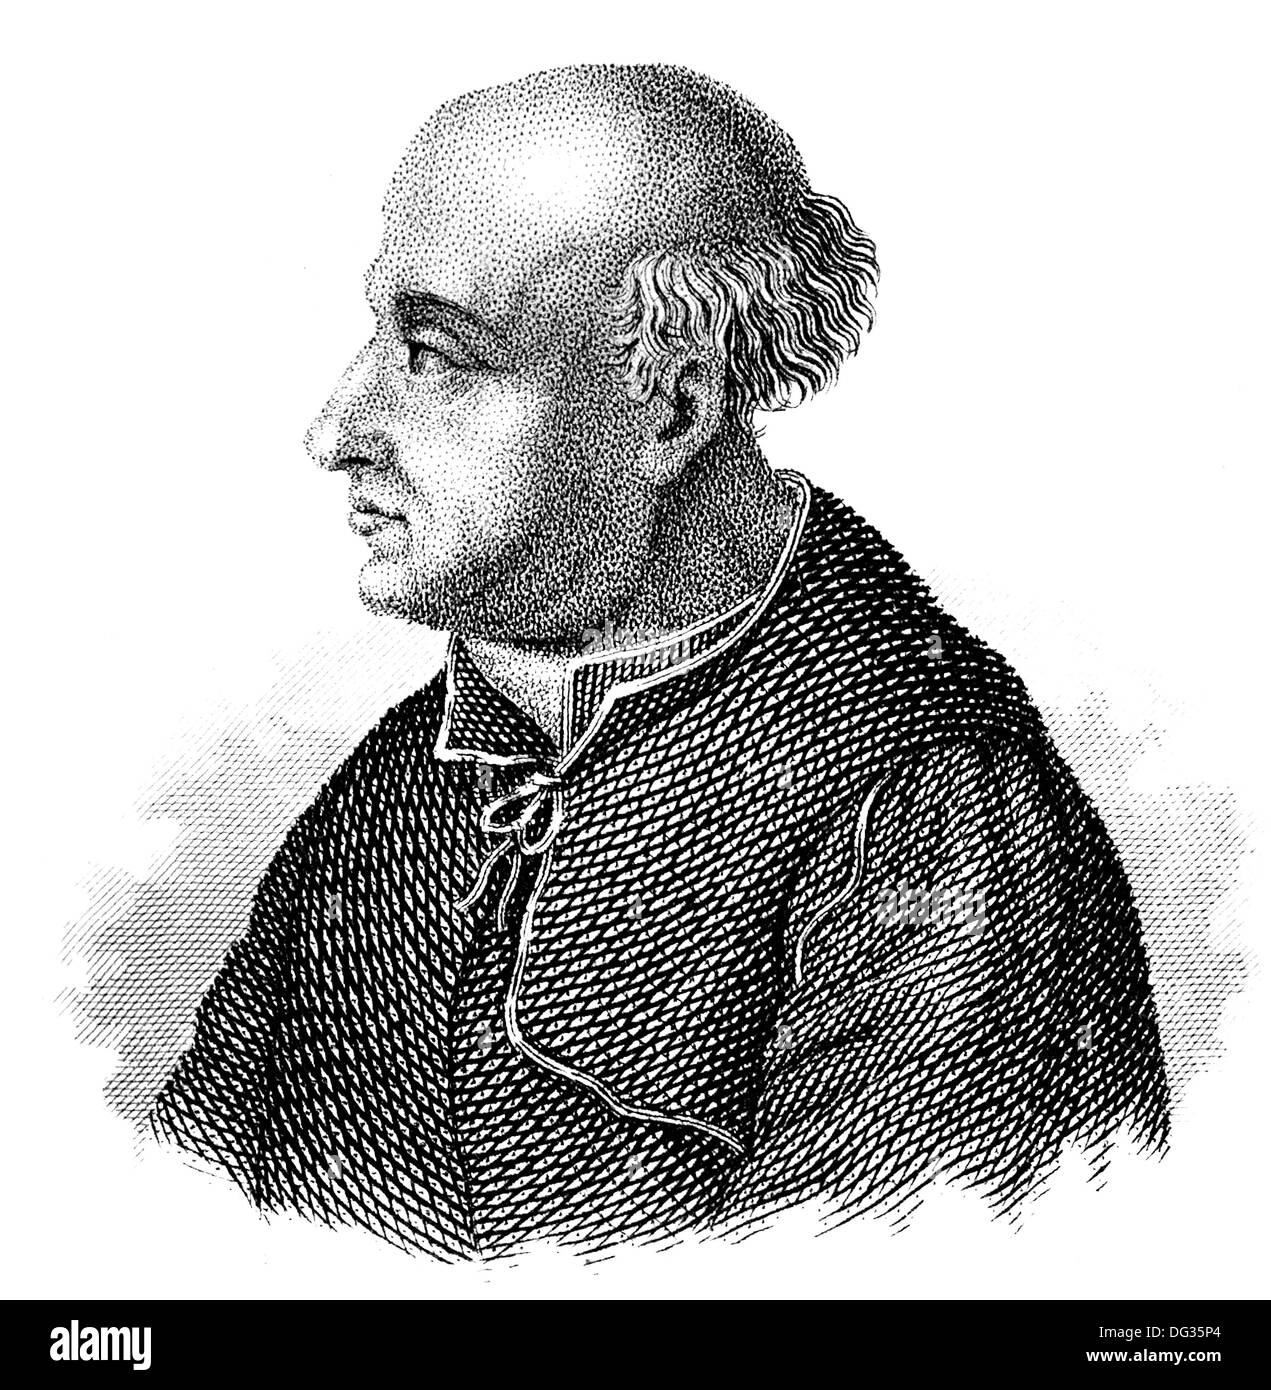 Paracelsus, 1493-1541, a Swiss physician, alchemist, astrologer, mystic, philosopher and lay theologian, - Stock Image